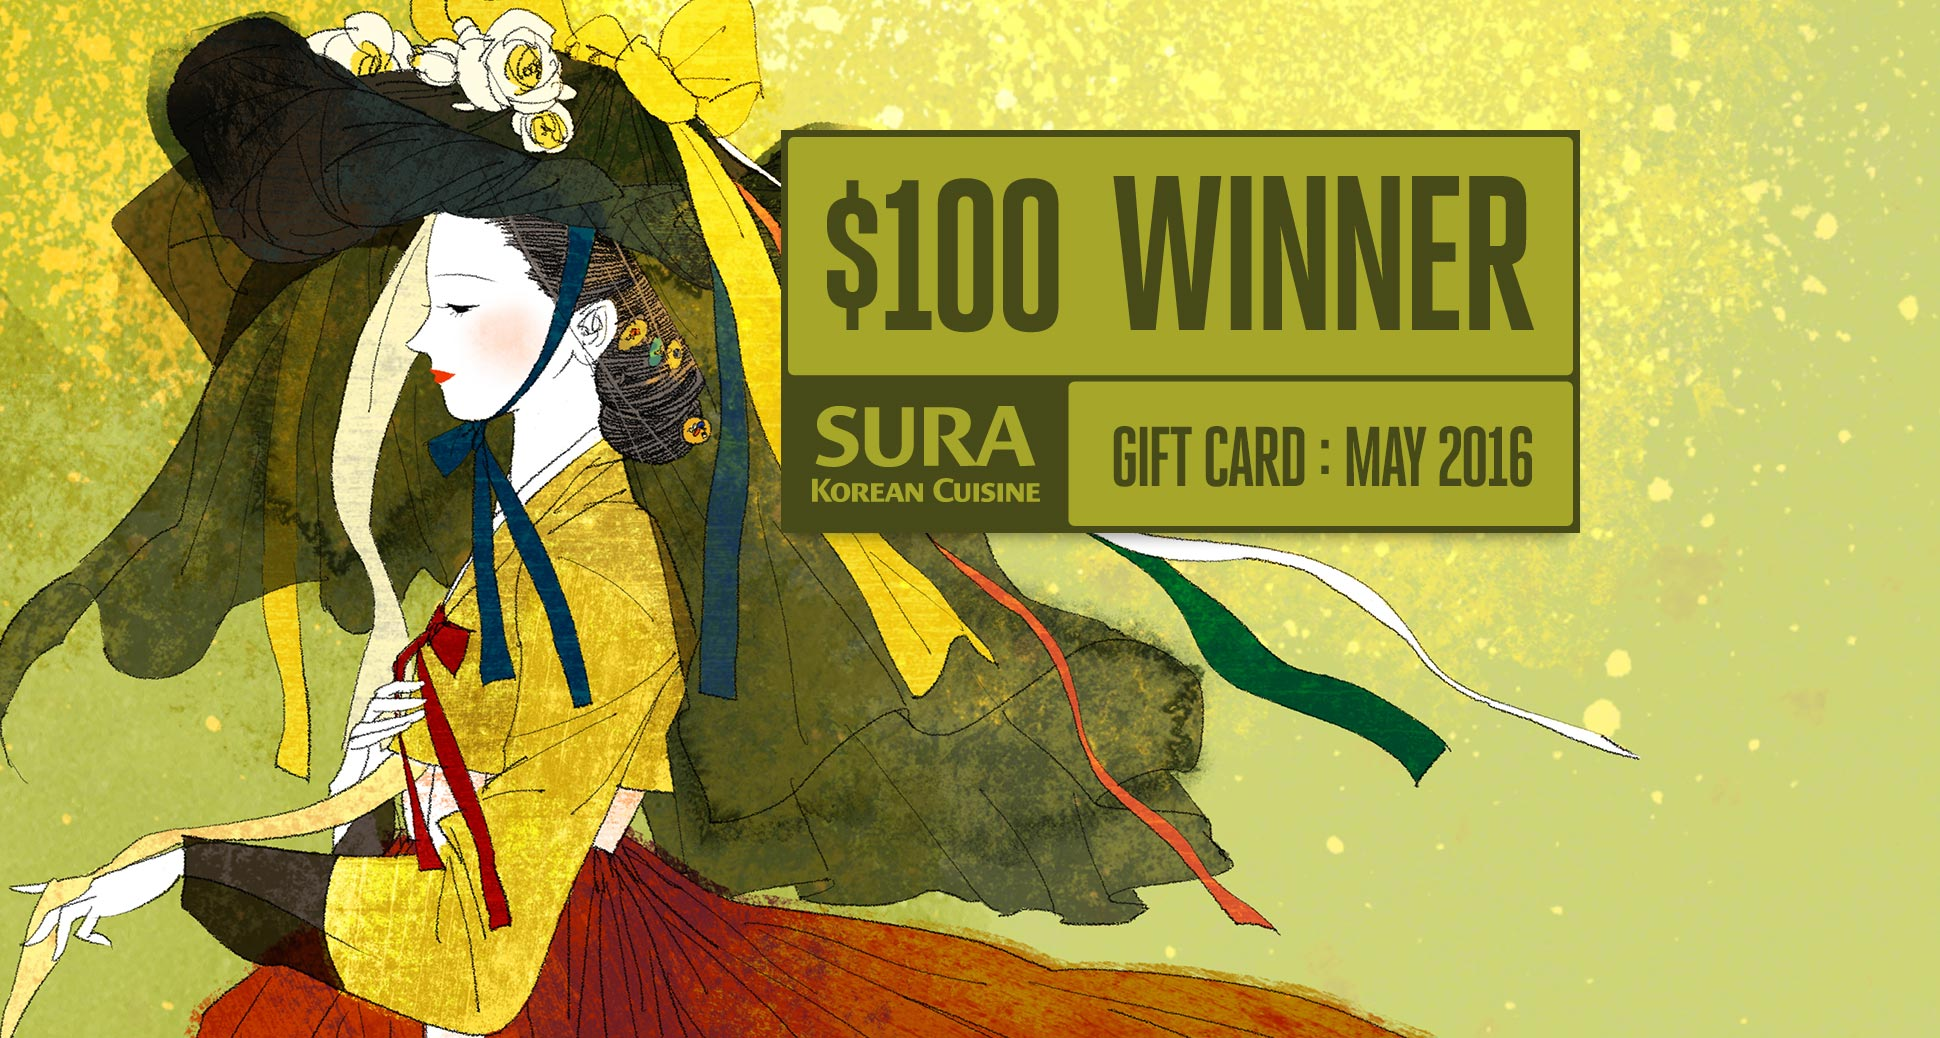 The winner of our may-2016 monthly draw for a $100 gift card is Lan Phuong!